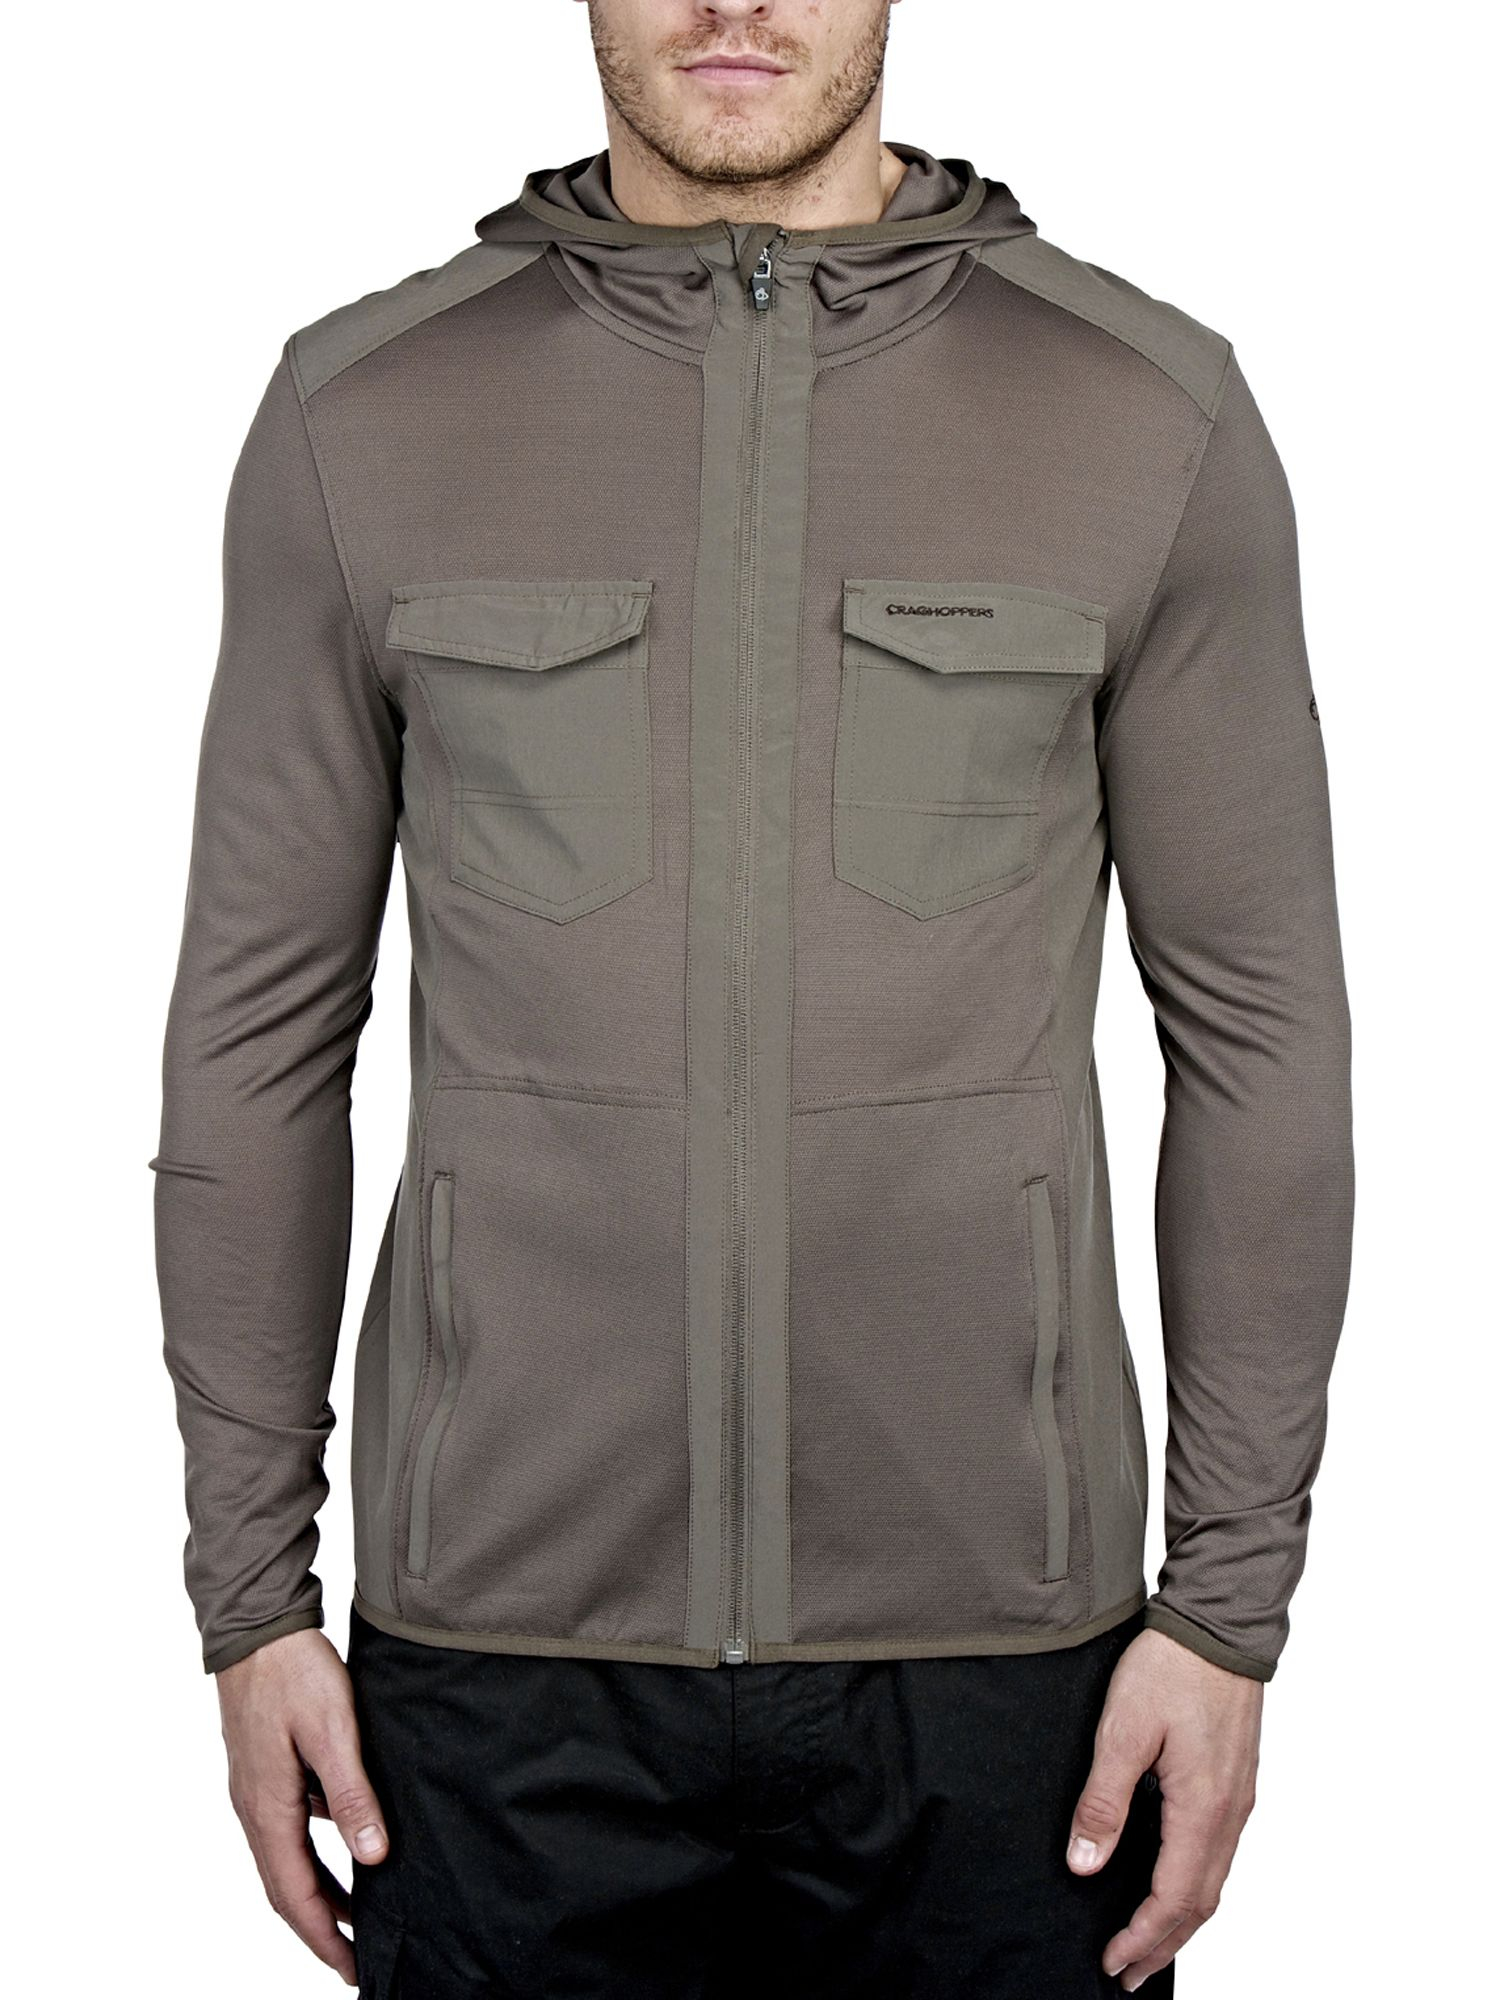 Craghoppers Synthetic Nosilife Chima Jacket in Green (Grey) for Men